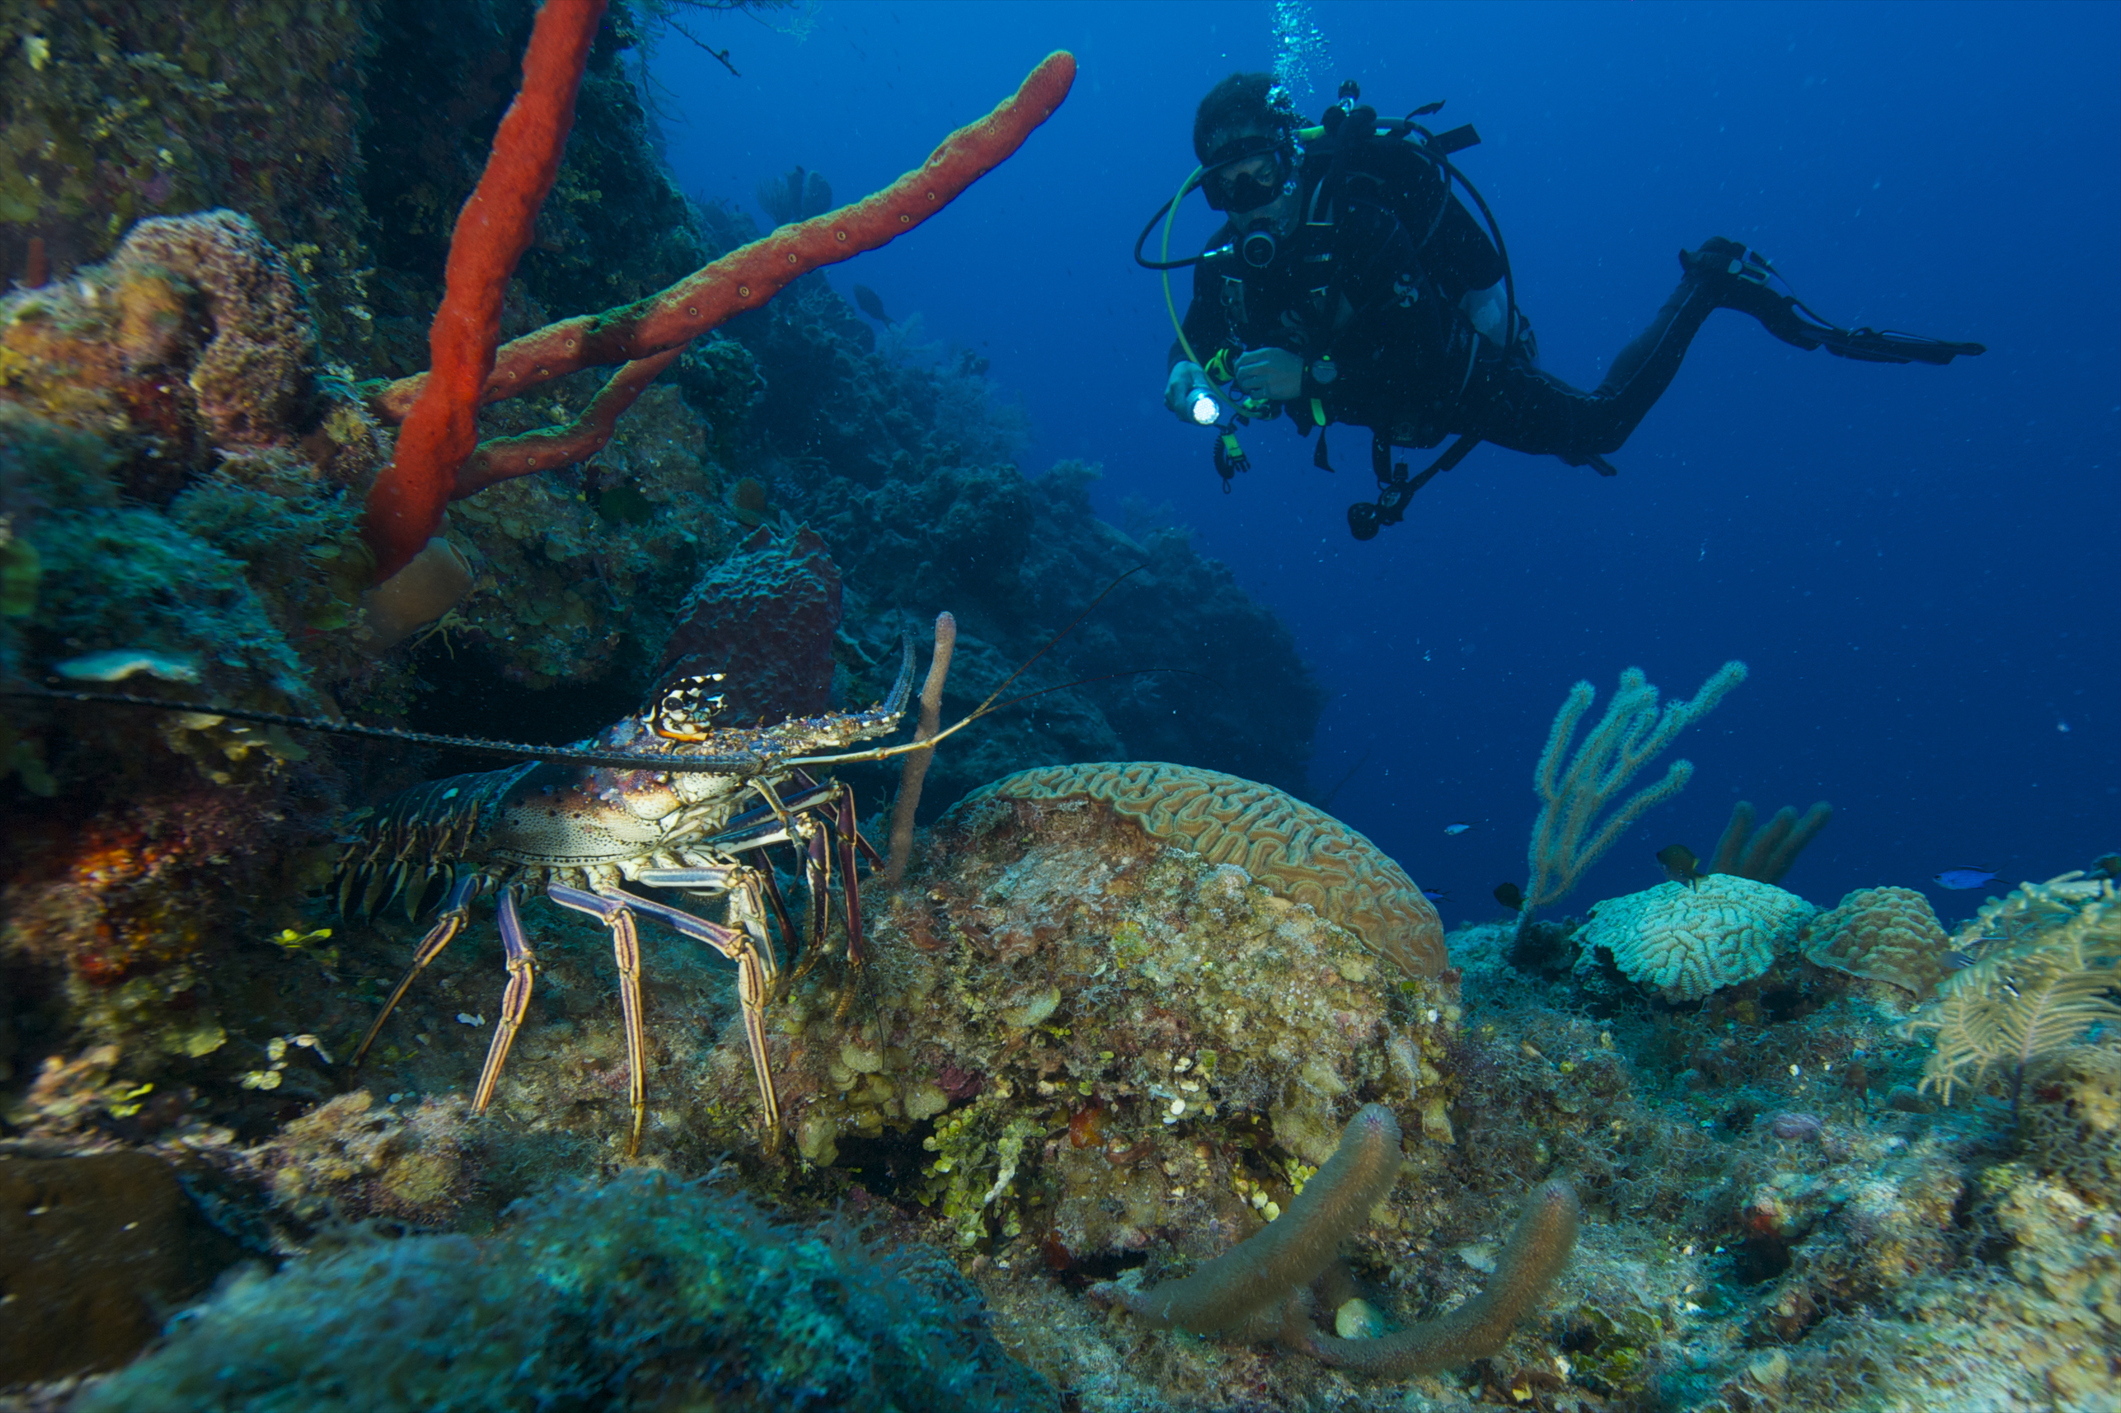 Scuba divers and Caribbean spiny lobsters both benefit from a healthy reef ecosystem off the coast of Andros Island. Photograph by Jad Davenport/Getty